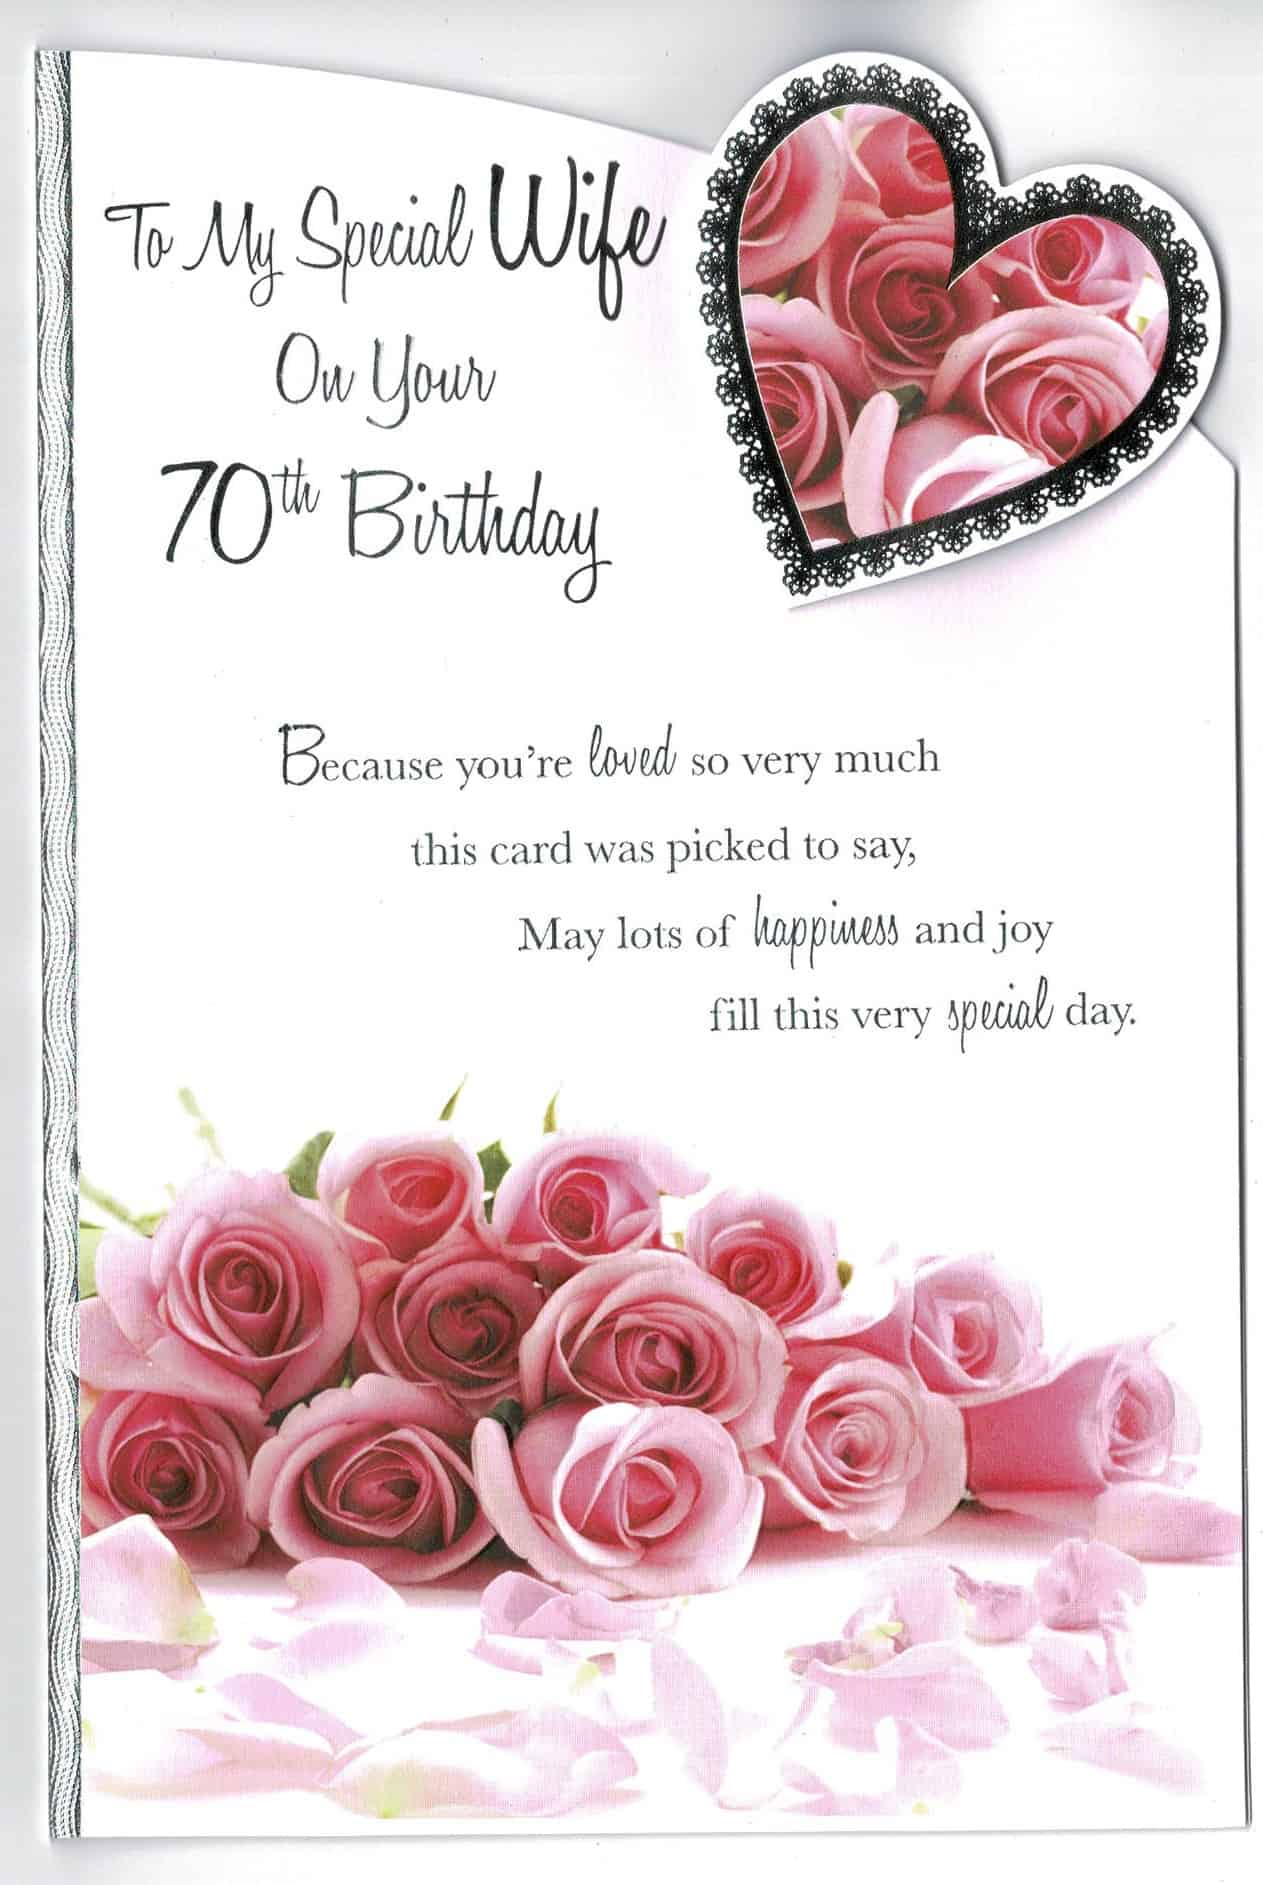 wife 70th birthday card 'to my special wife on your 70th